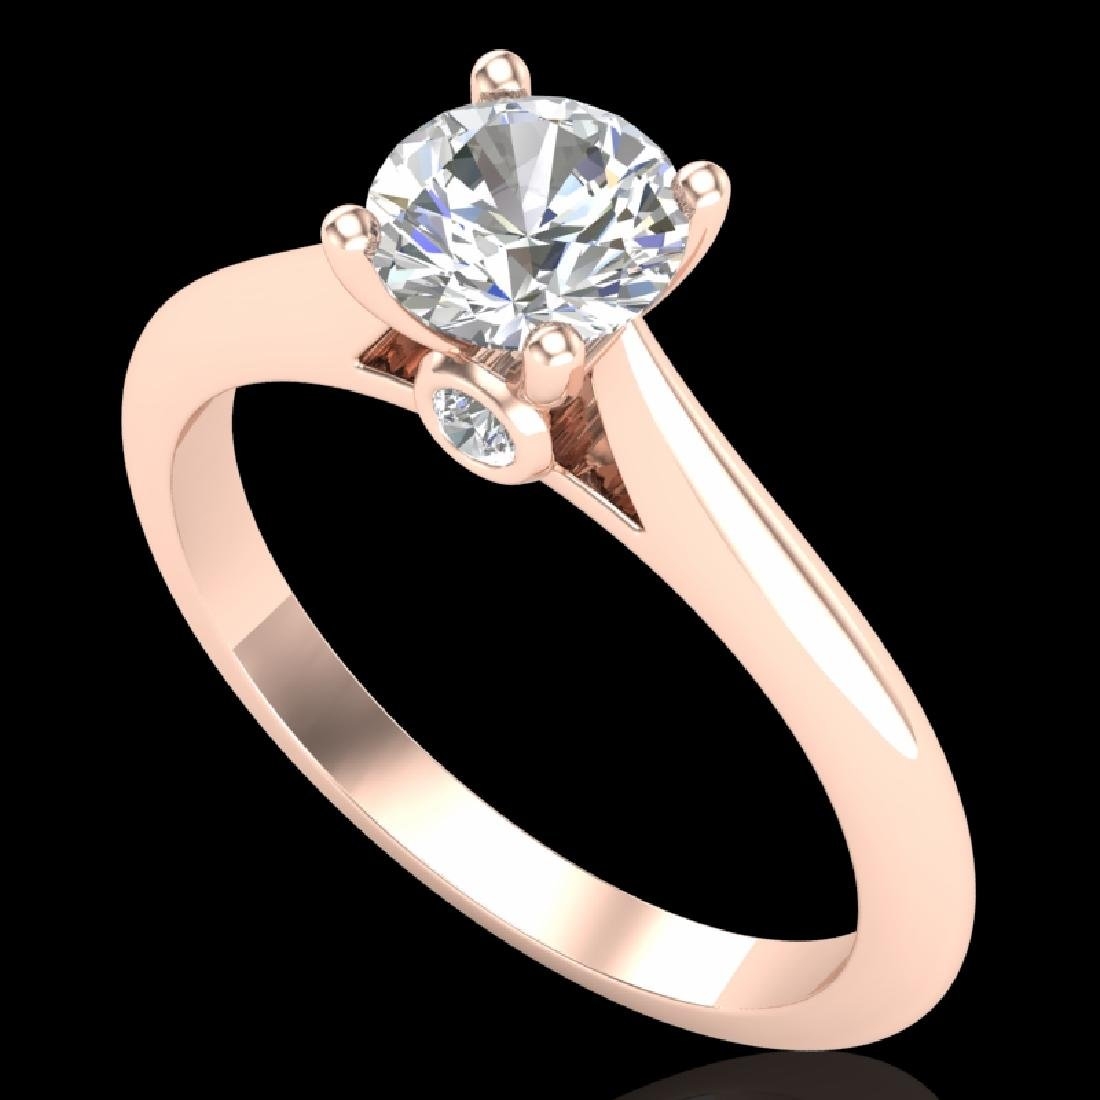 0.83 CTW VS/SI Diamond Solitaire Art Deco Ring 18K Rose